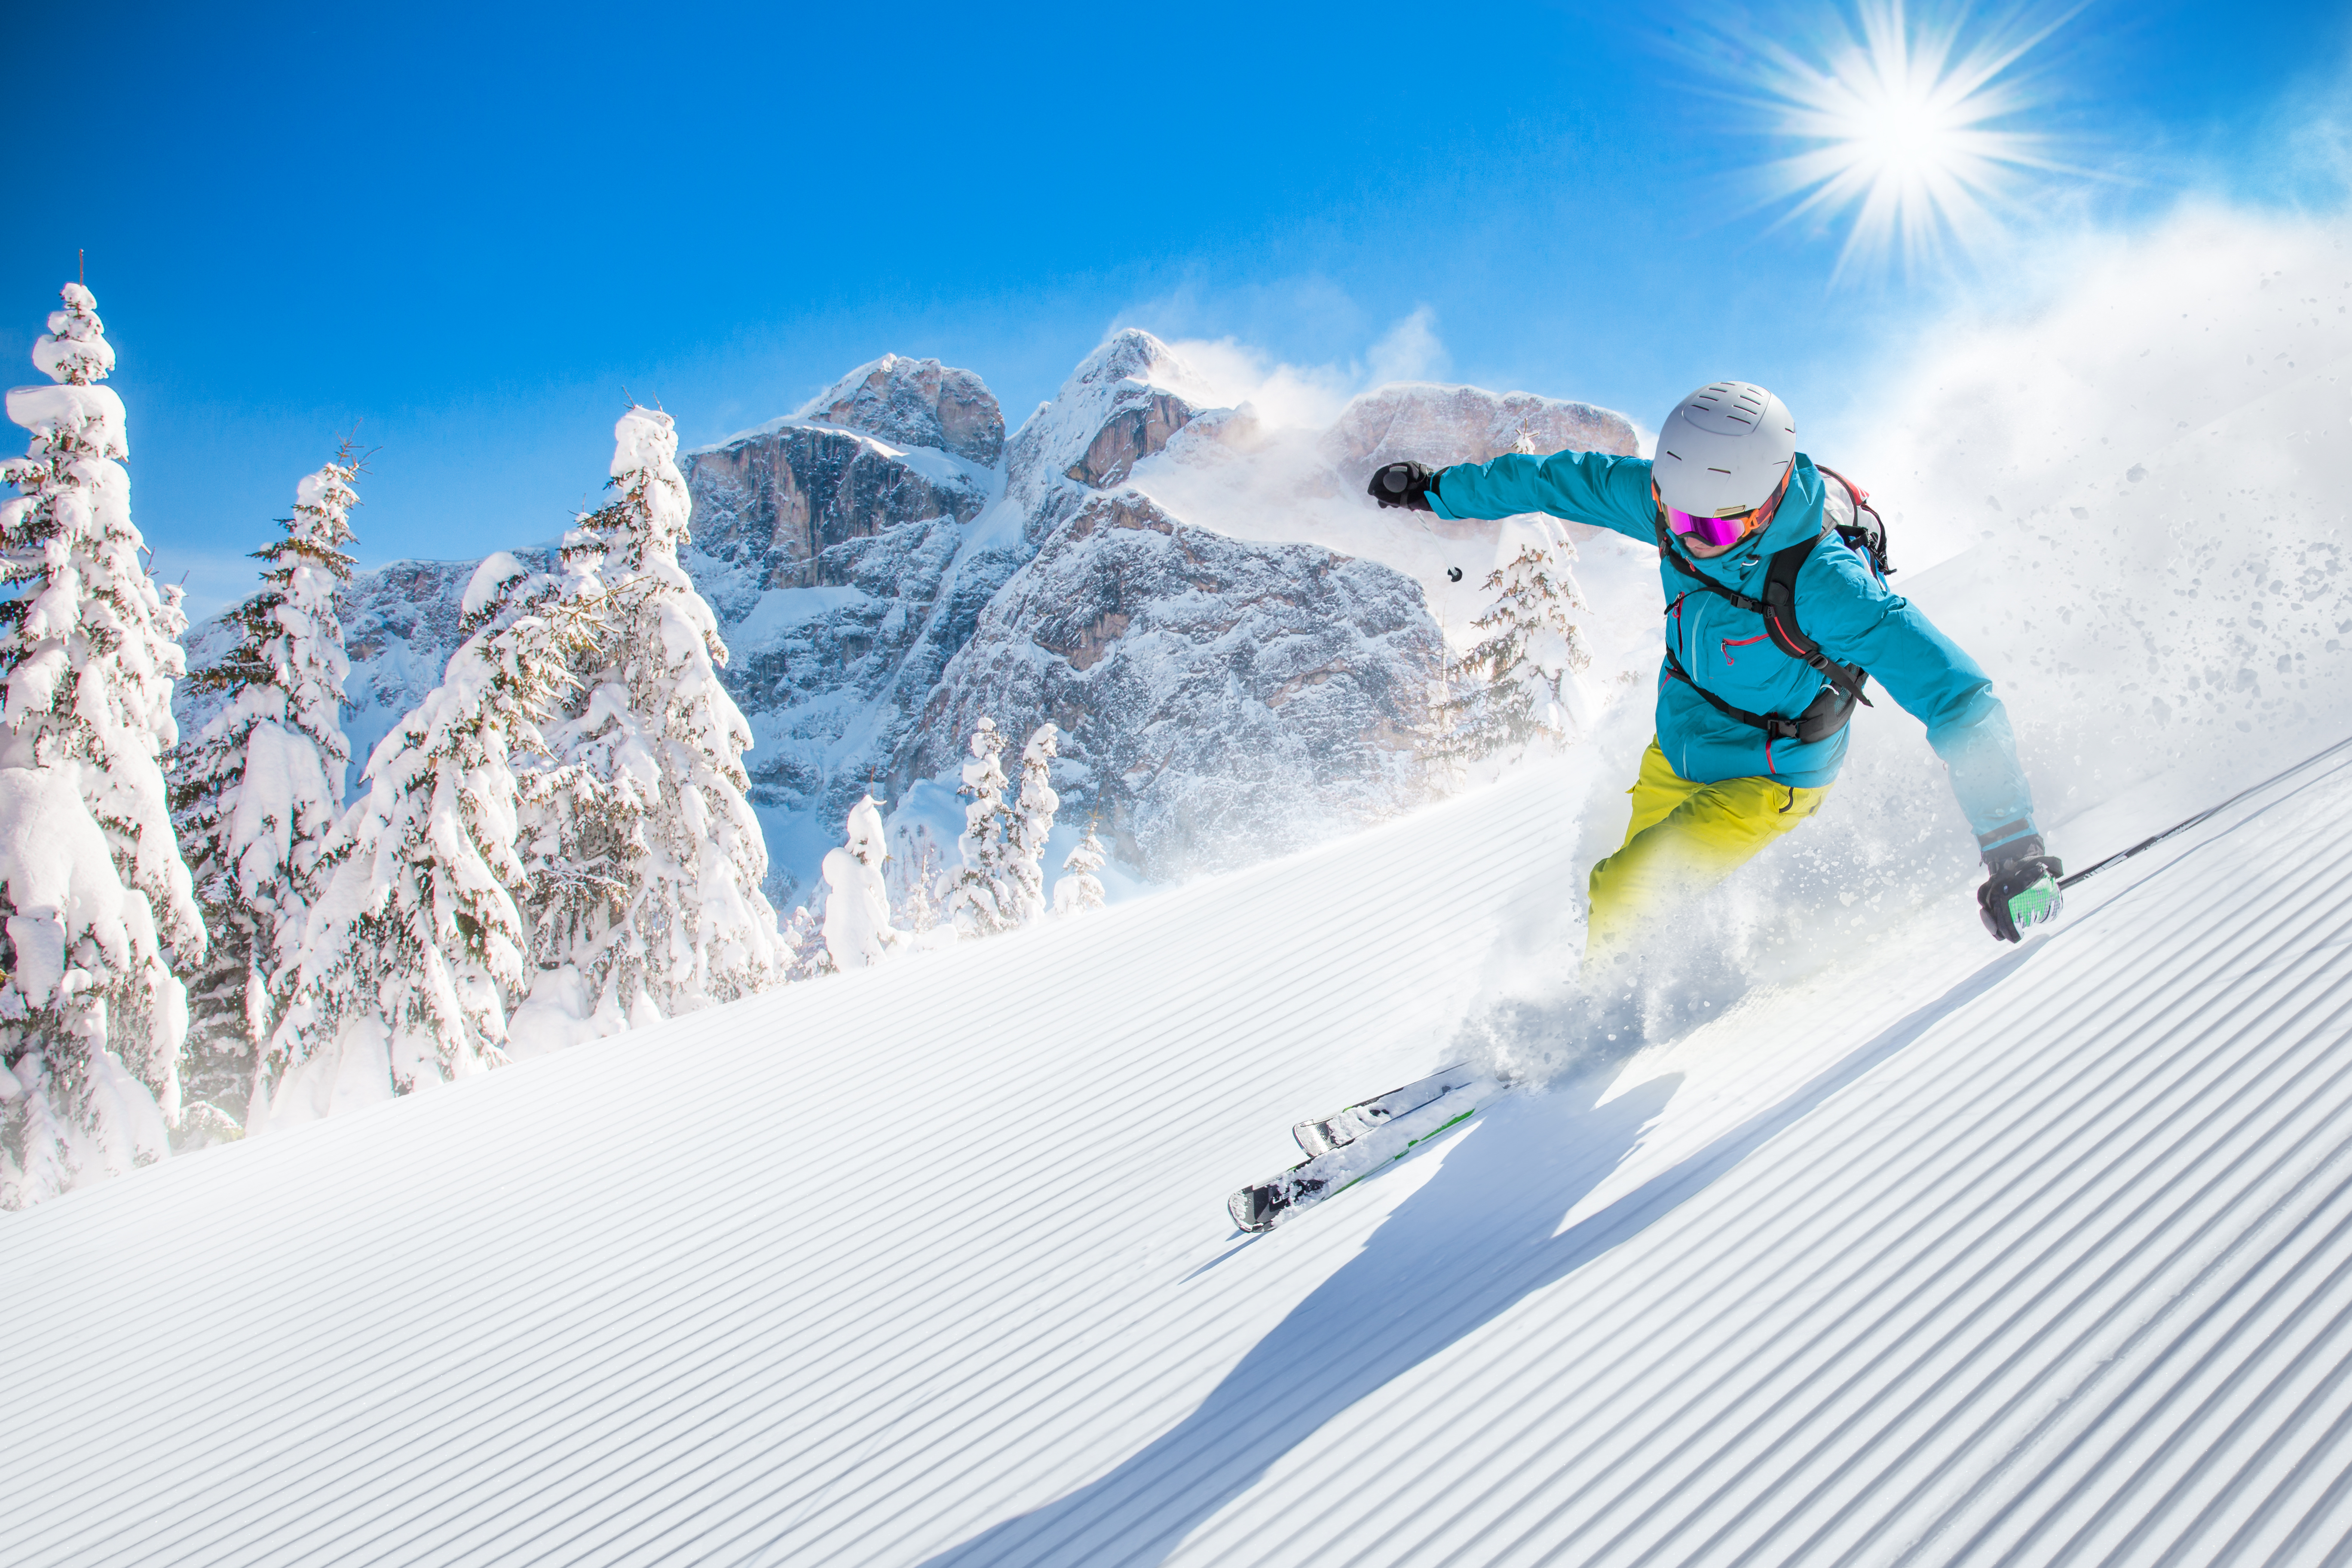 2022, the year of the skier